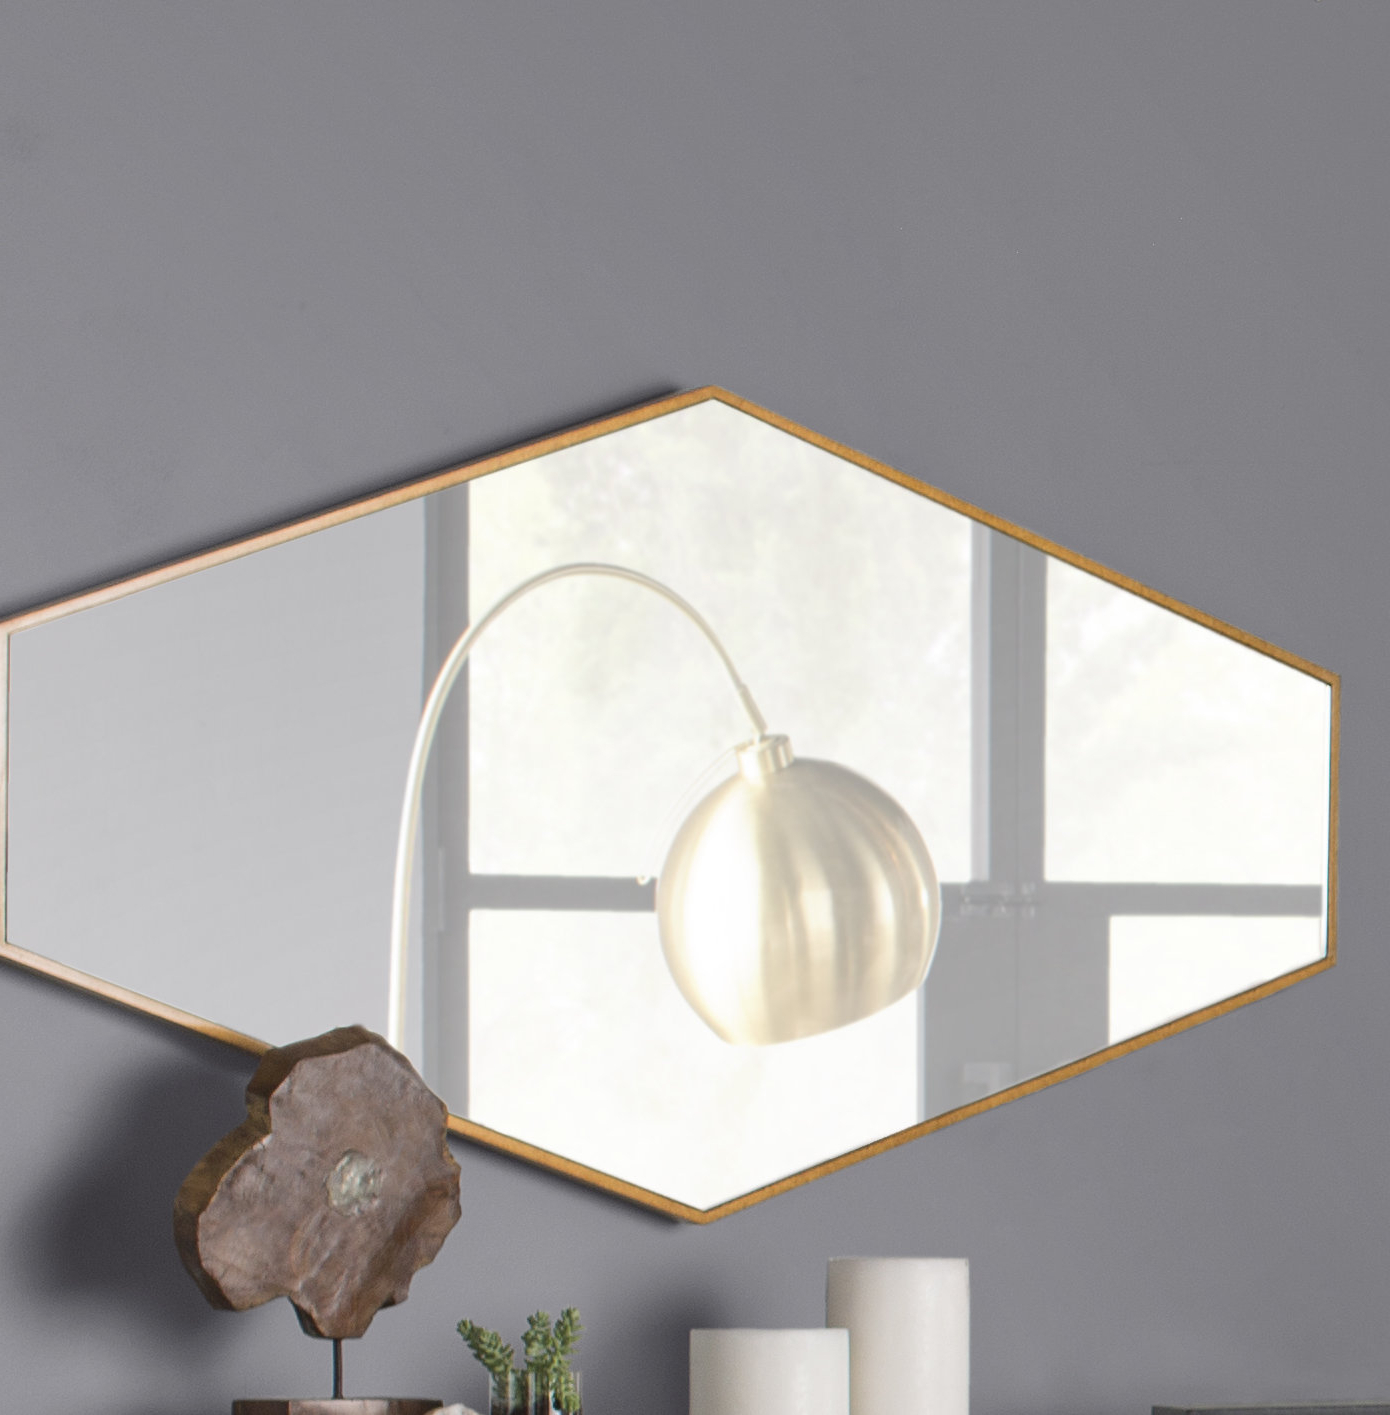 Accent Mirror With Regard To 2019 Padang Irregular Wood Framed Wall Mirrors (View 20 of 20)